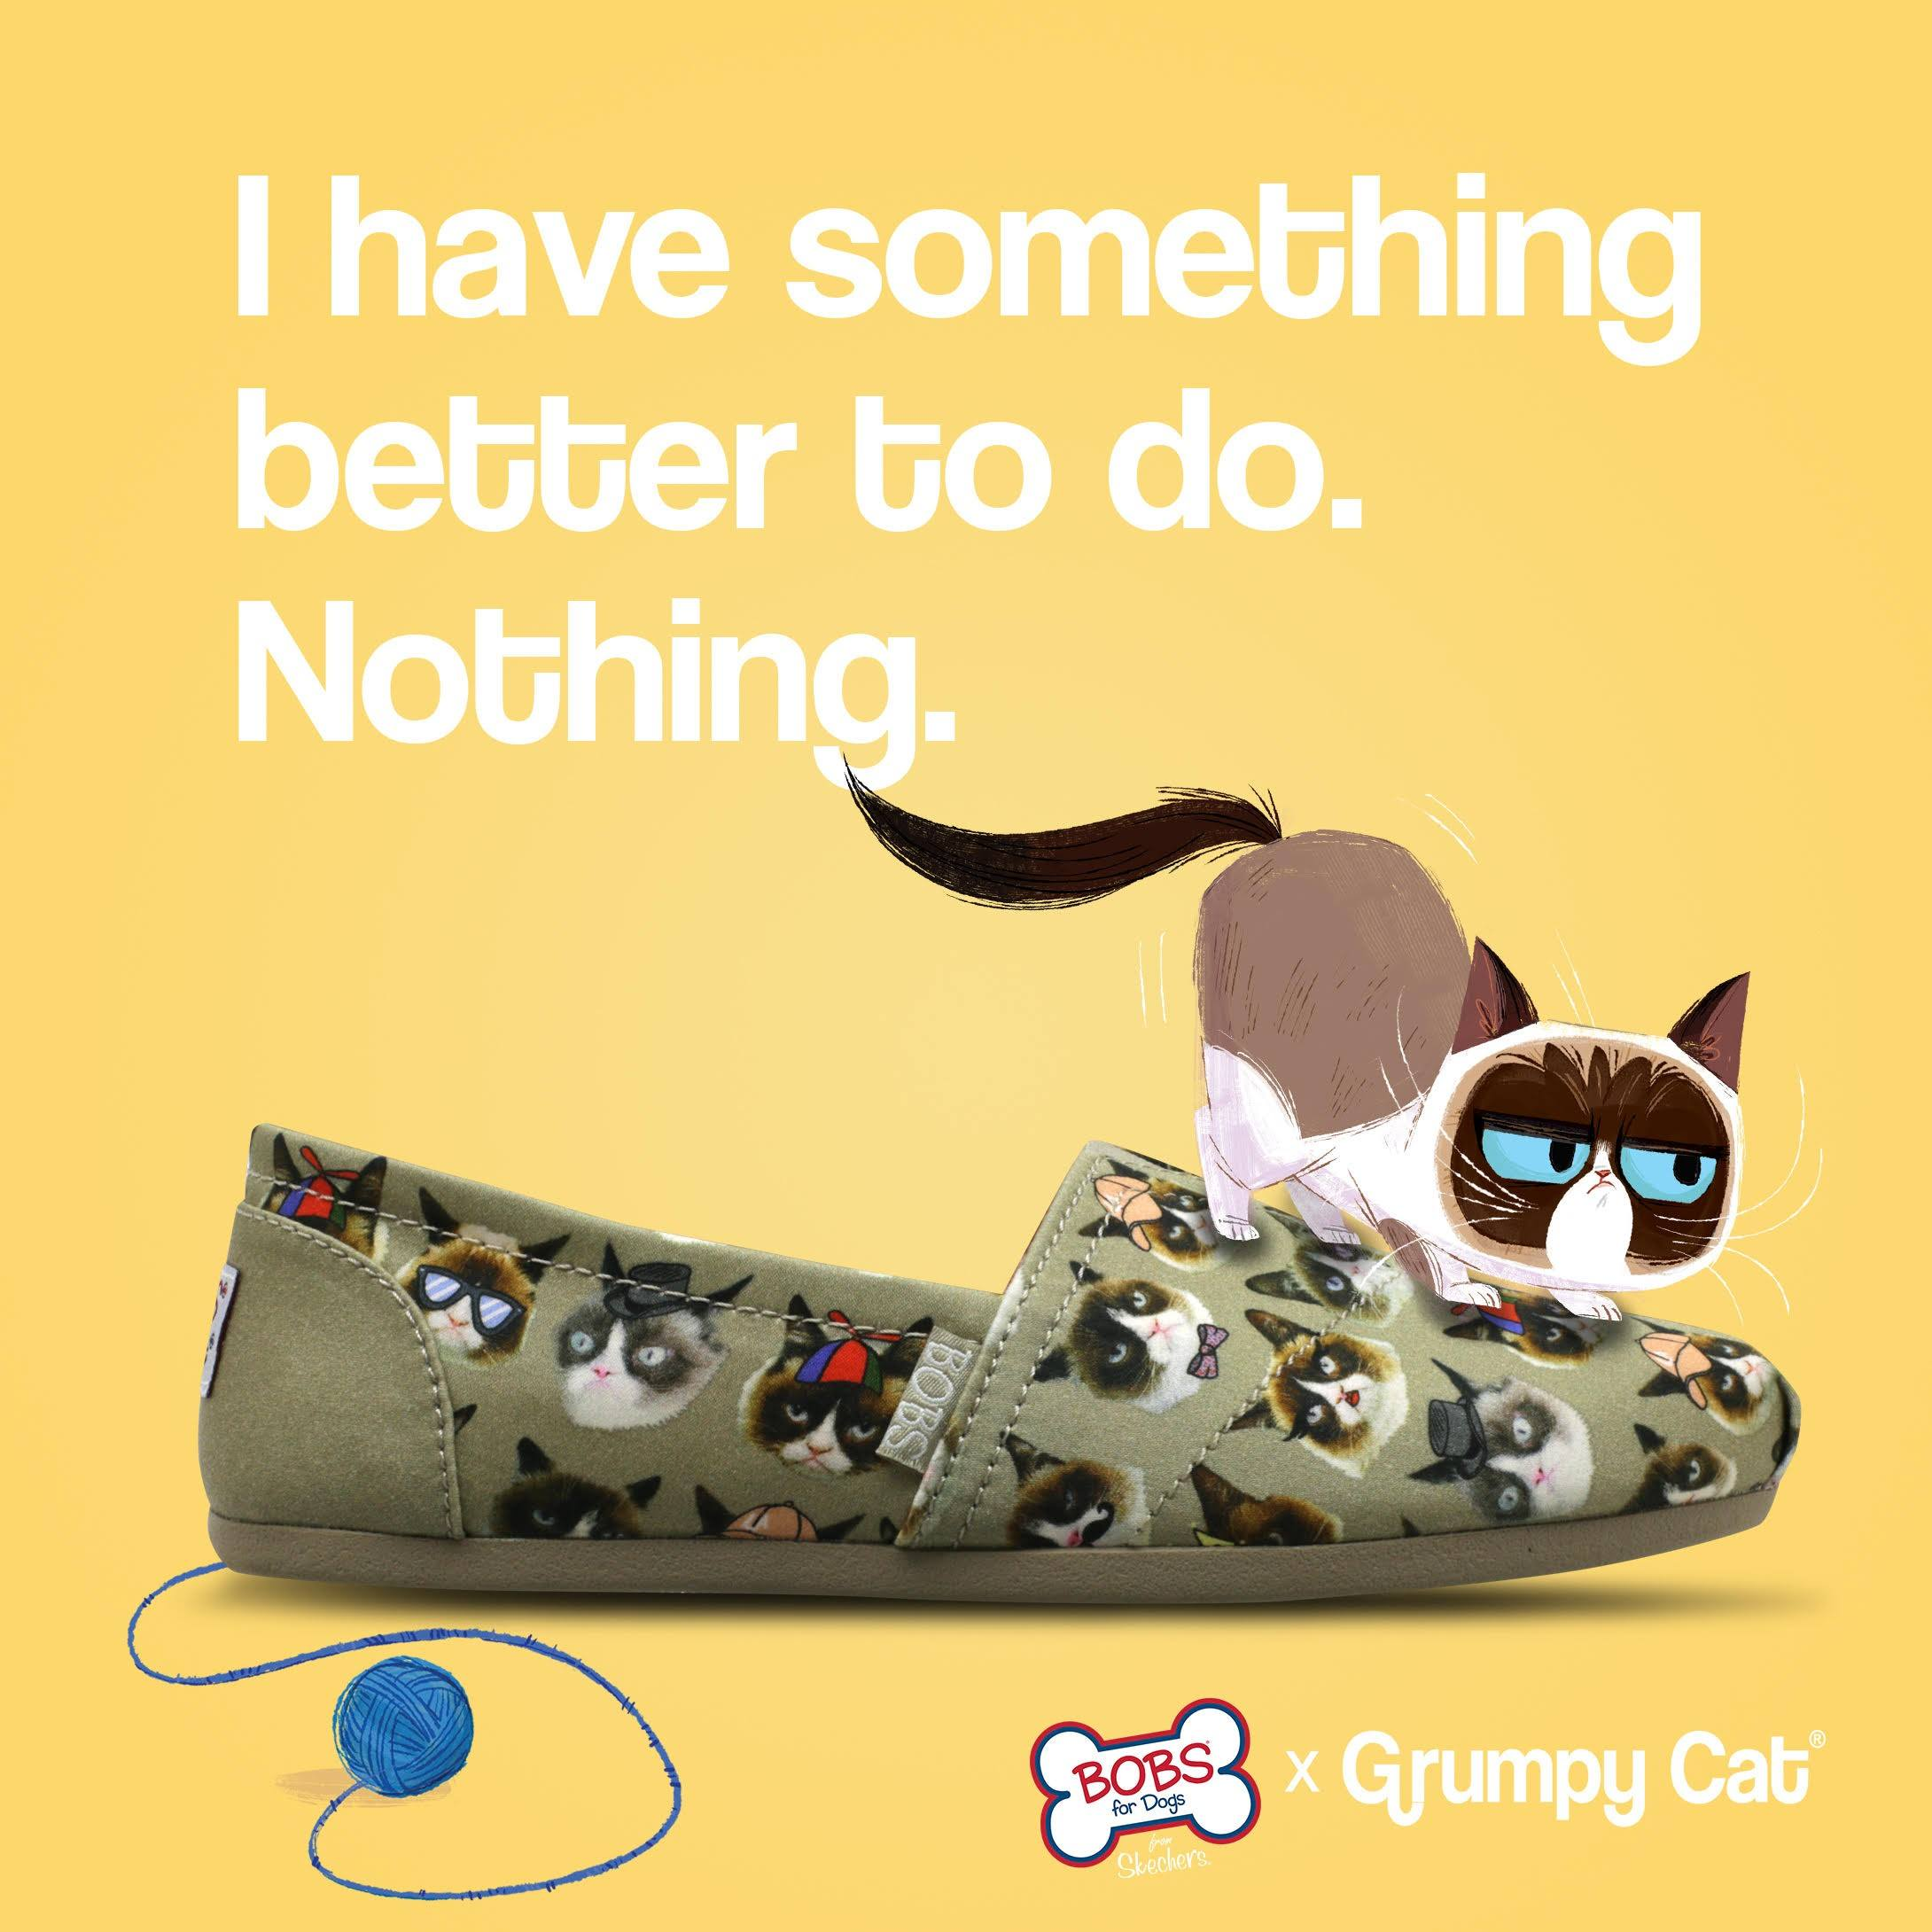 c46112ff81d41 Grumpy Cat and Sketchers Shoes Team Up for Animal Rescue - PetsWeekly.com